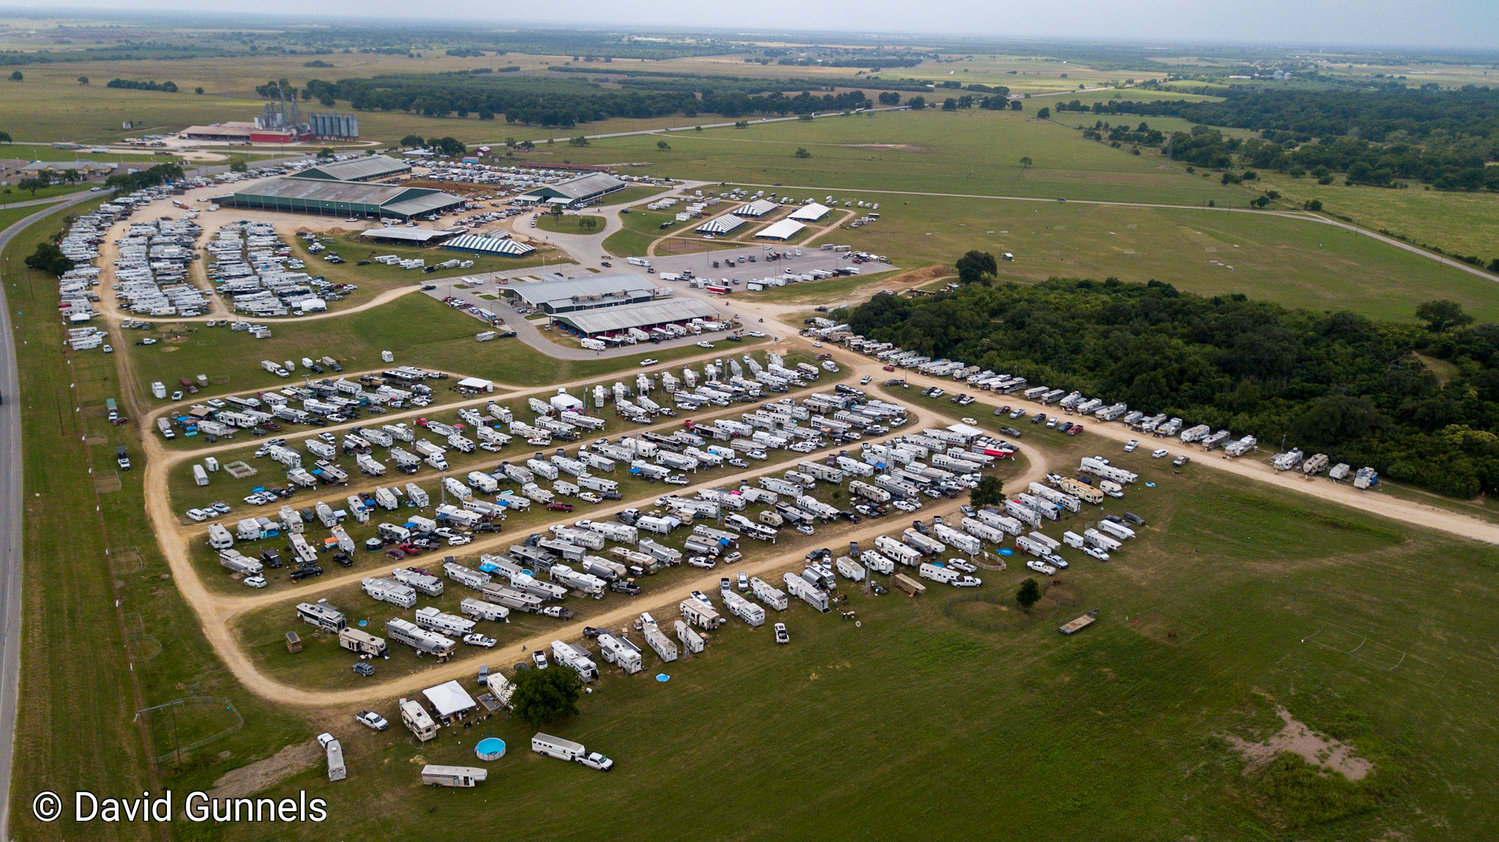 J.B. Wells Park was filled with campers and trailers as state rodeo finalists compete at the TJHRA finals last week.